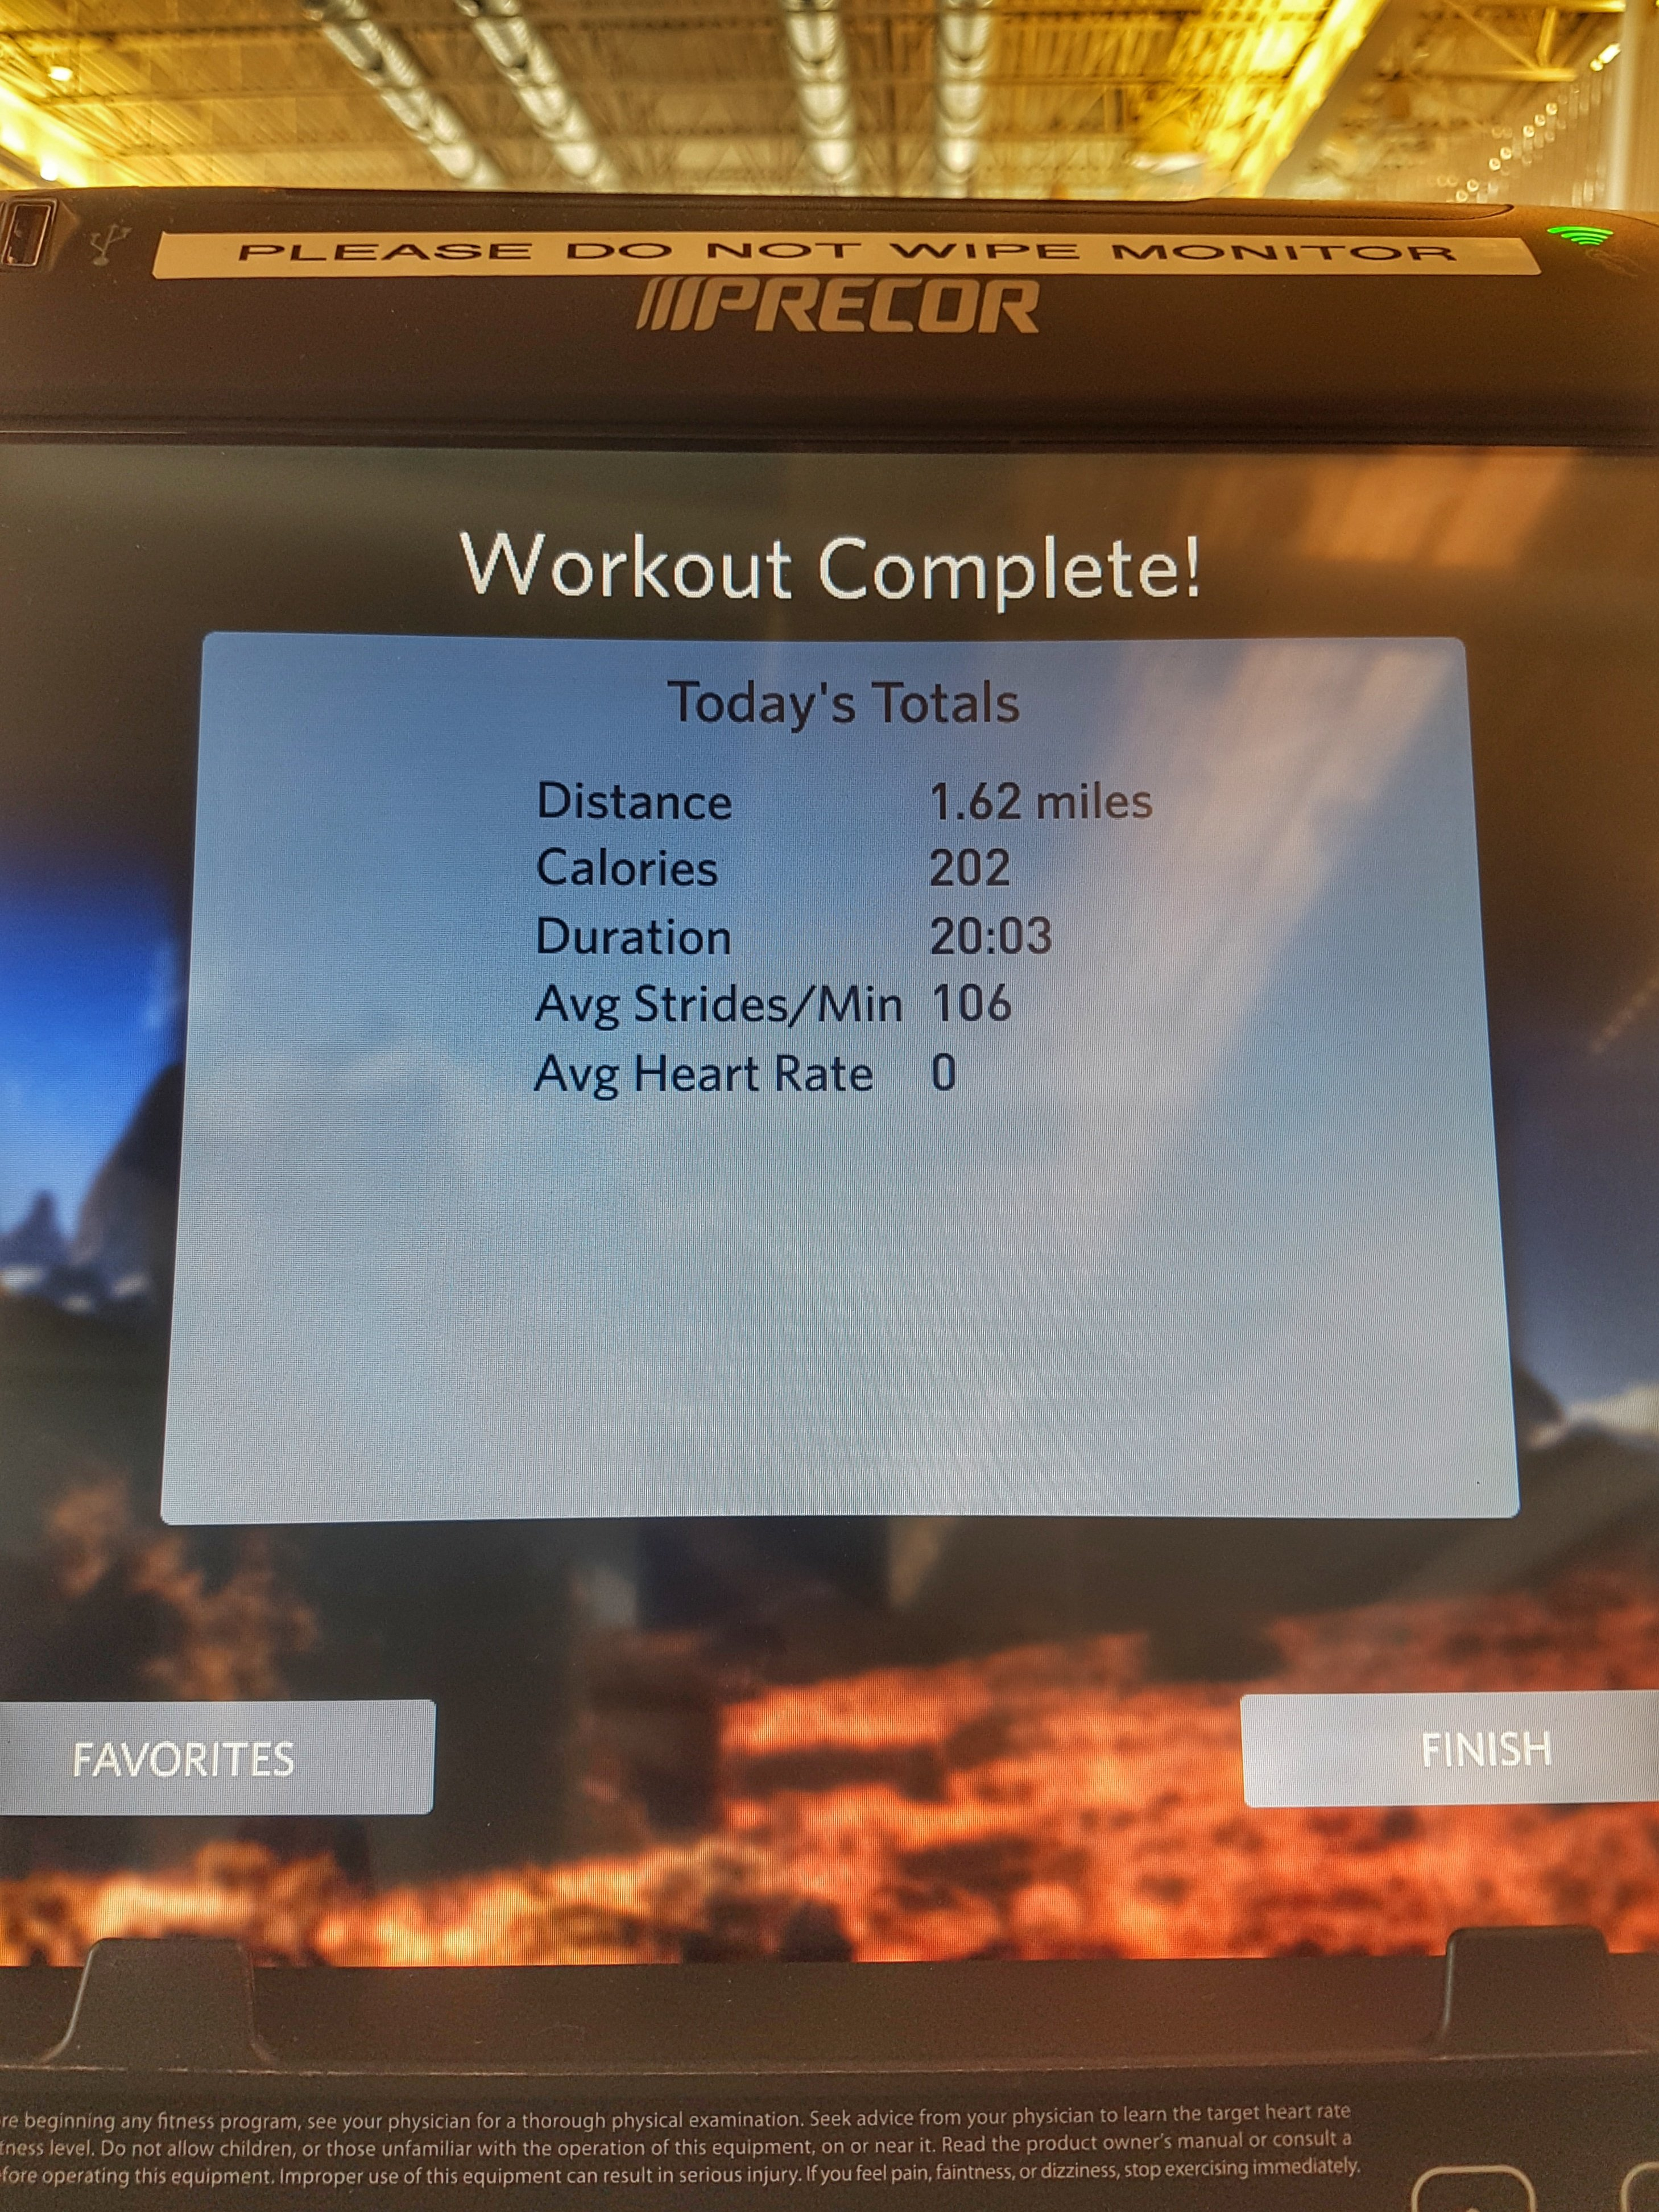 Elliptical Workout Results